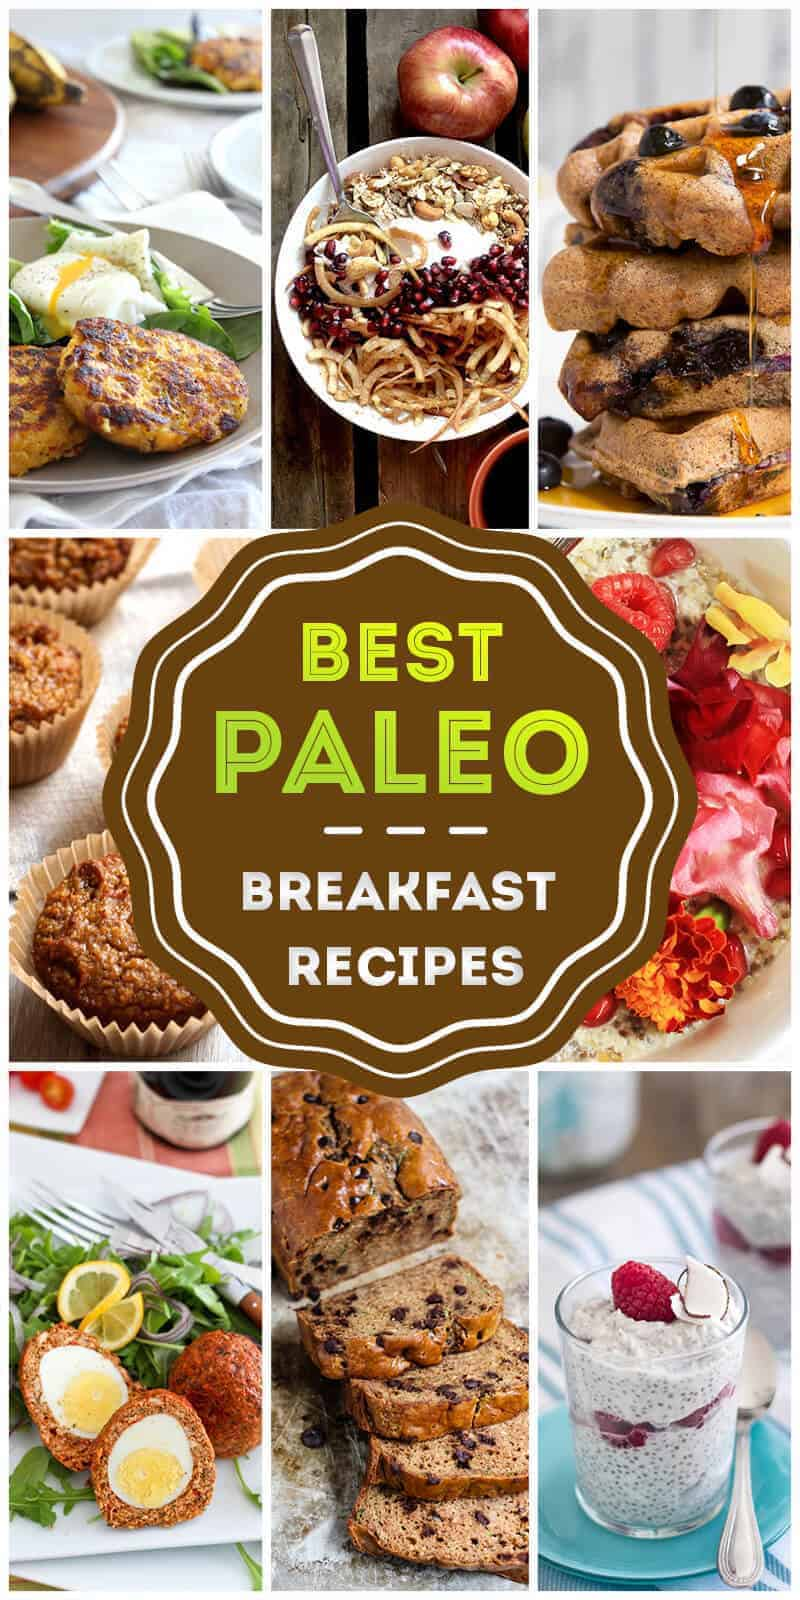 Best Paleo Breakfasts